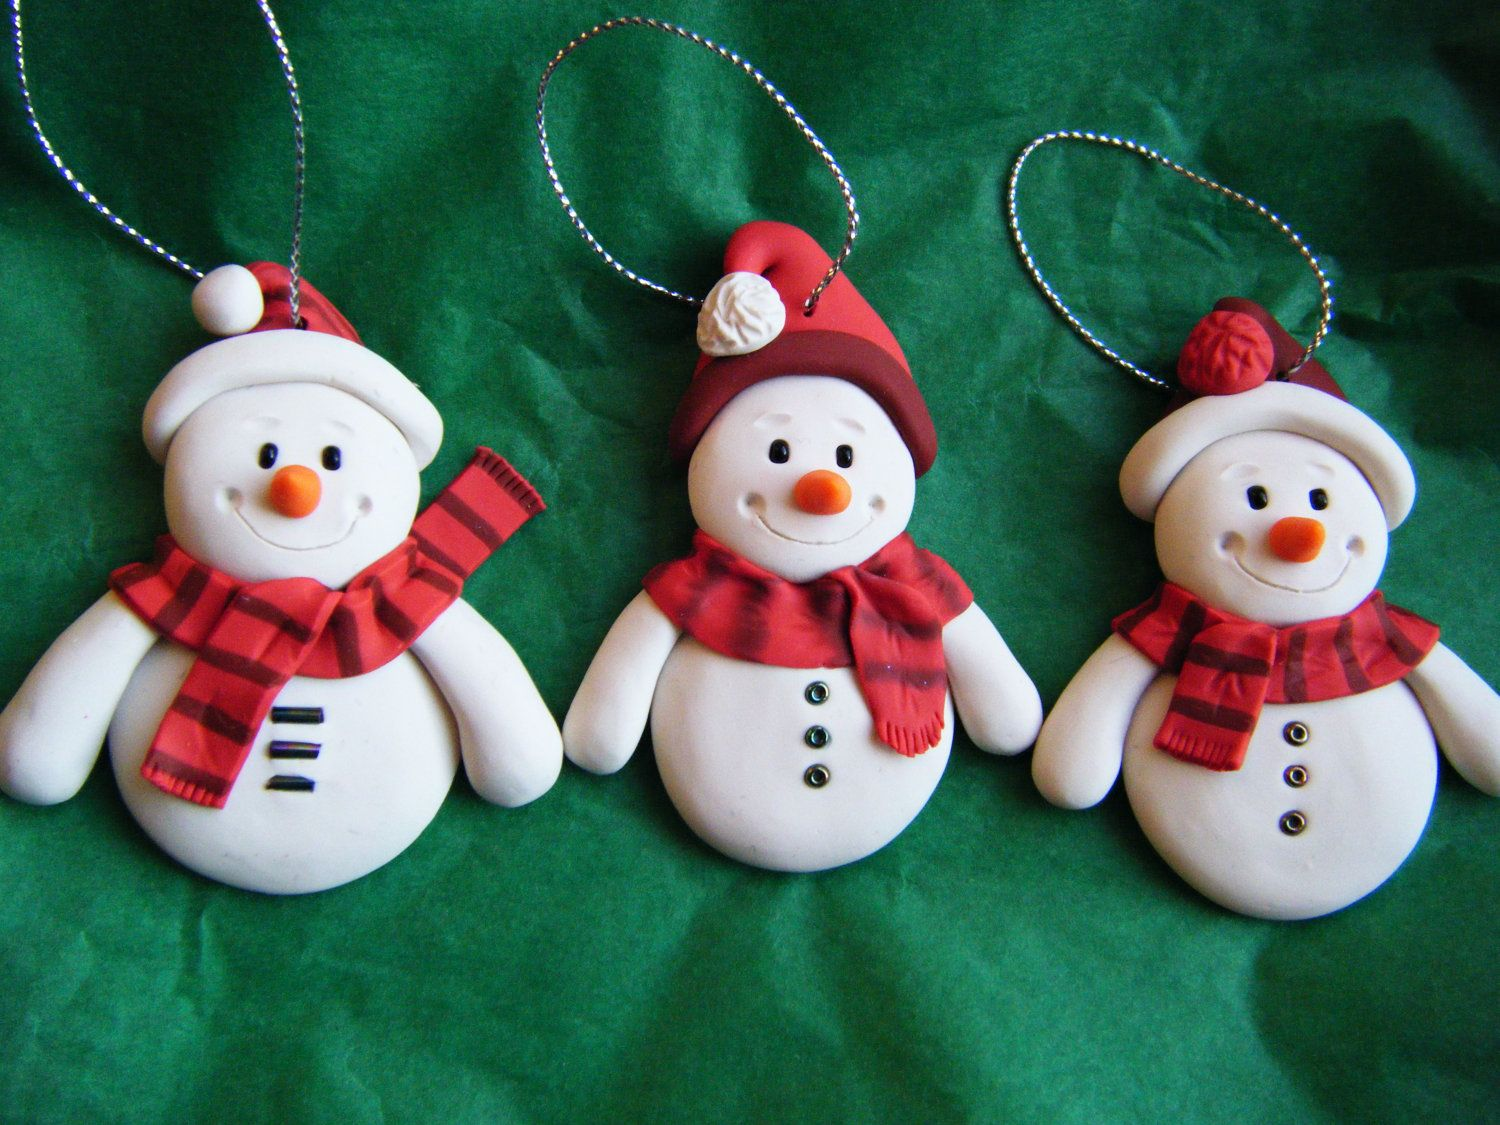 Set of 3 made to order handmade sculpey clay snowmen ornaments set of 3 made to order handmade sculpey clay snowmen ornaments set of 3 solutioingenieria Gallery